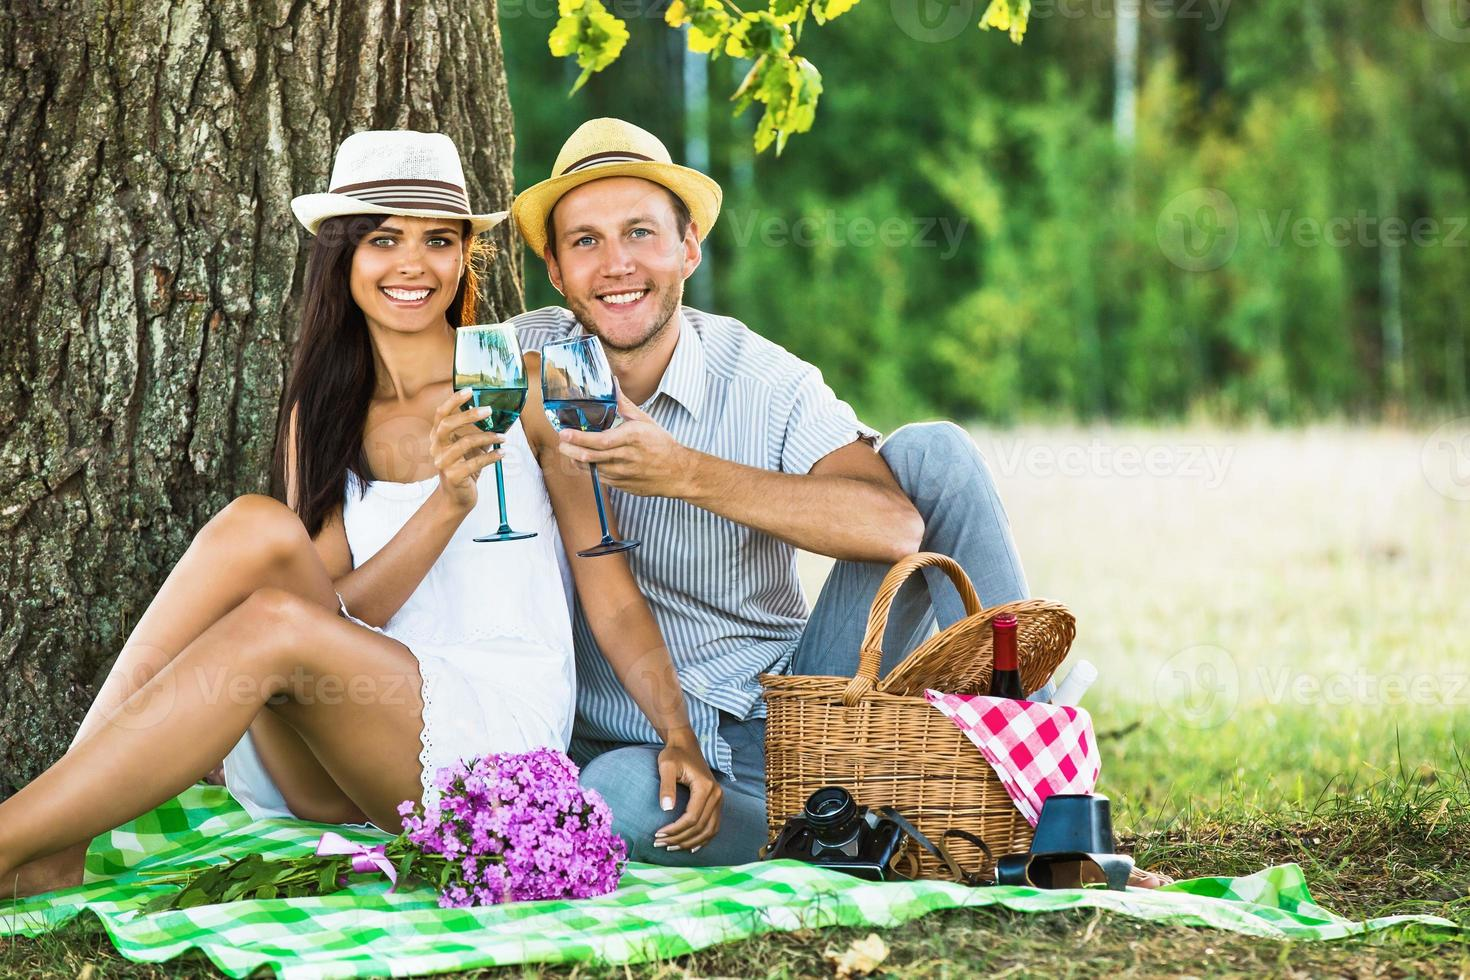 Loving couple relaxing in nature photo